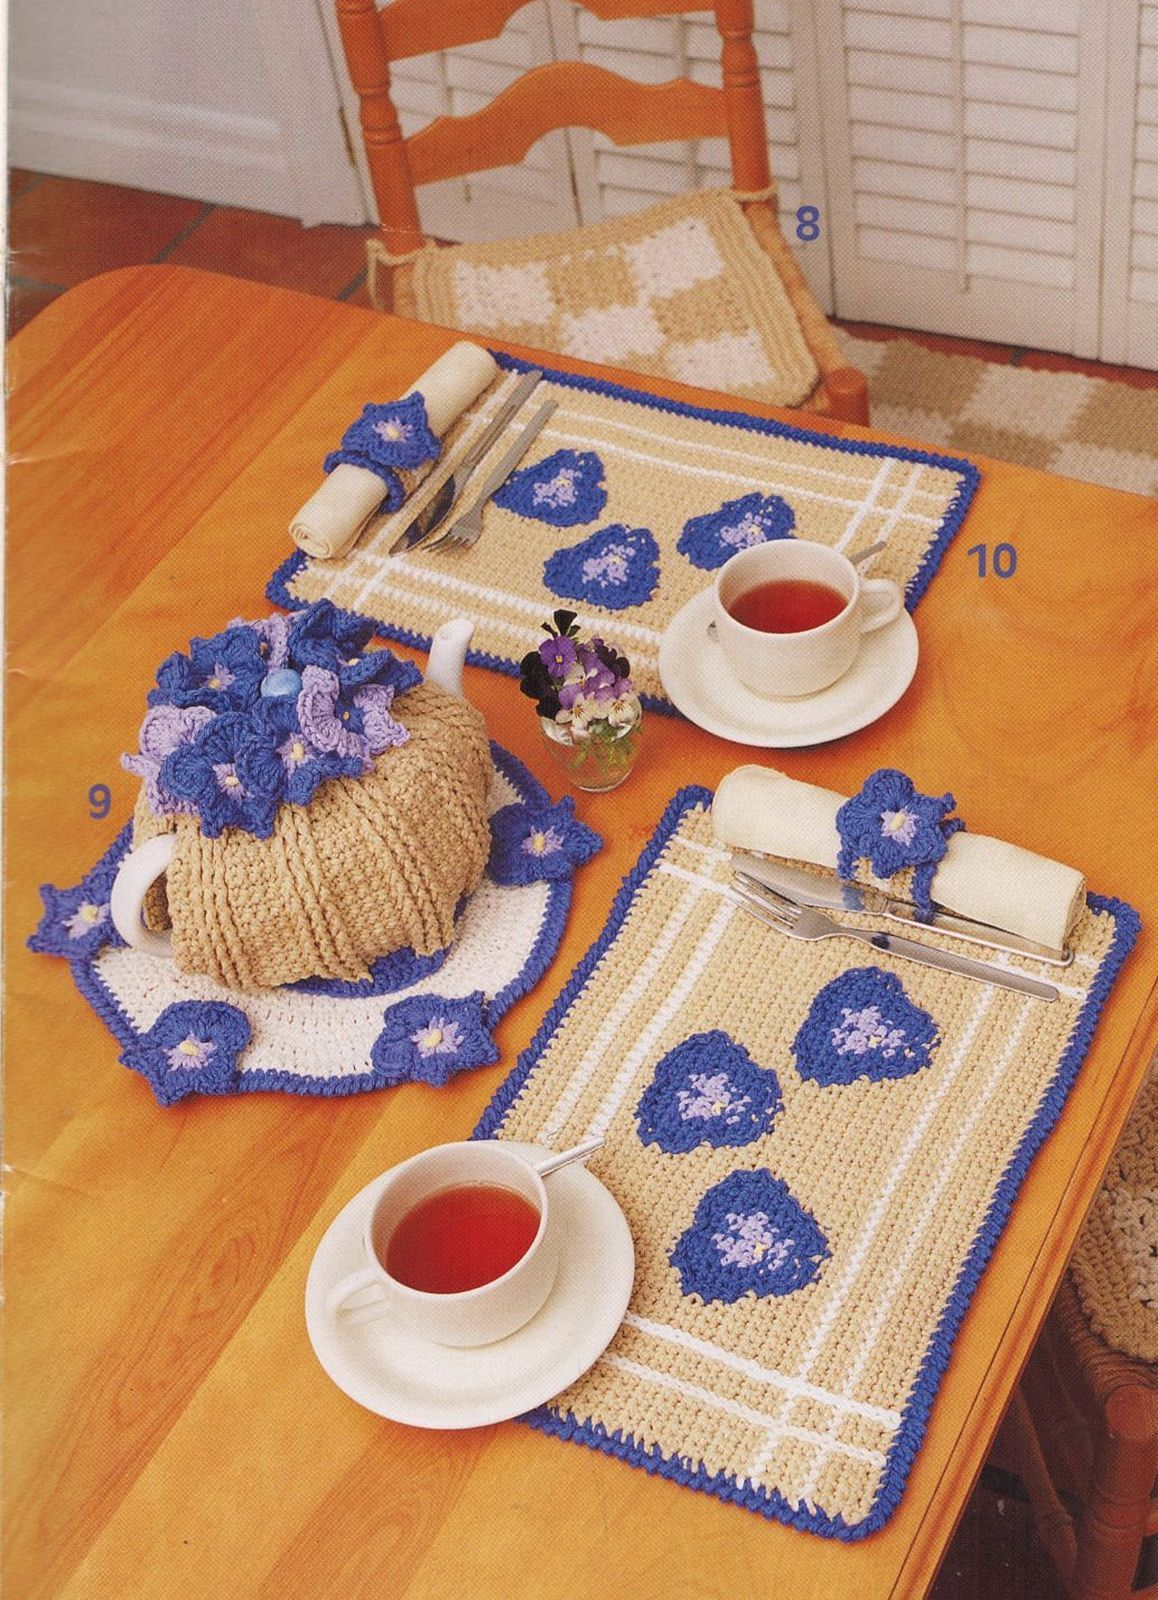 Primary image for 13 Crochet Pansy Apron Towel Pot Pie Plate Utensil Holder Place Mats Rug Pattern